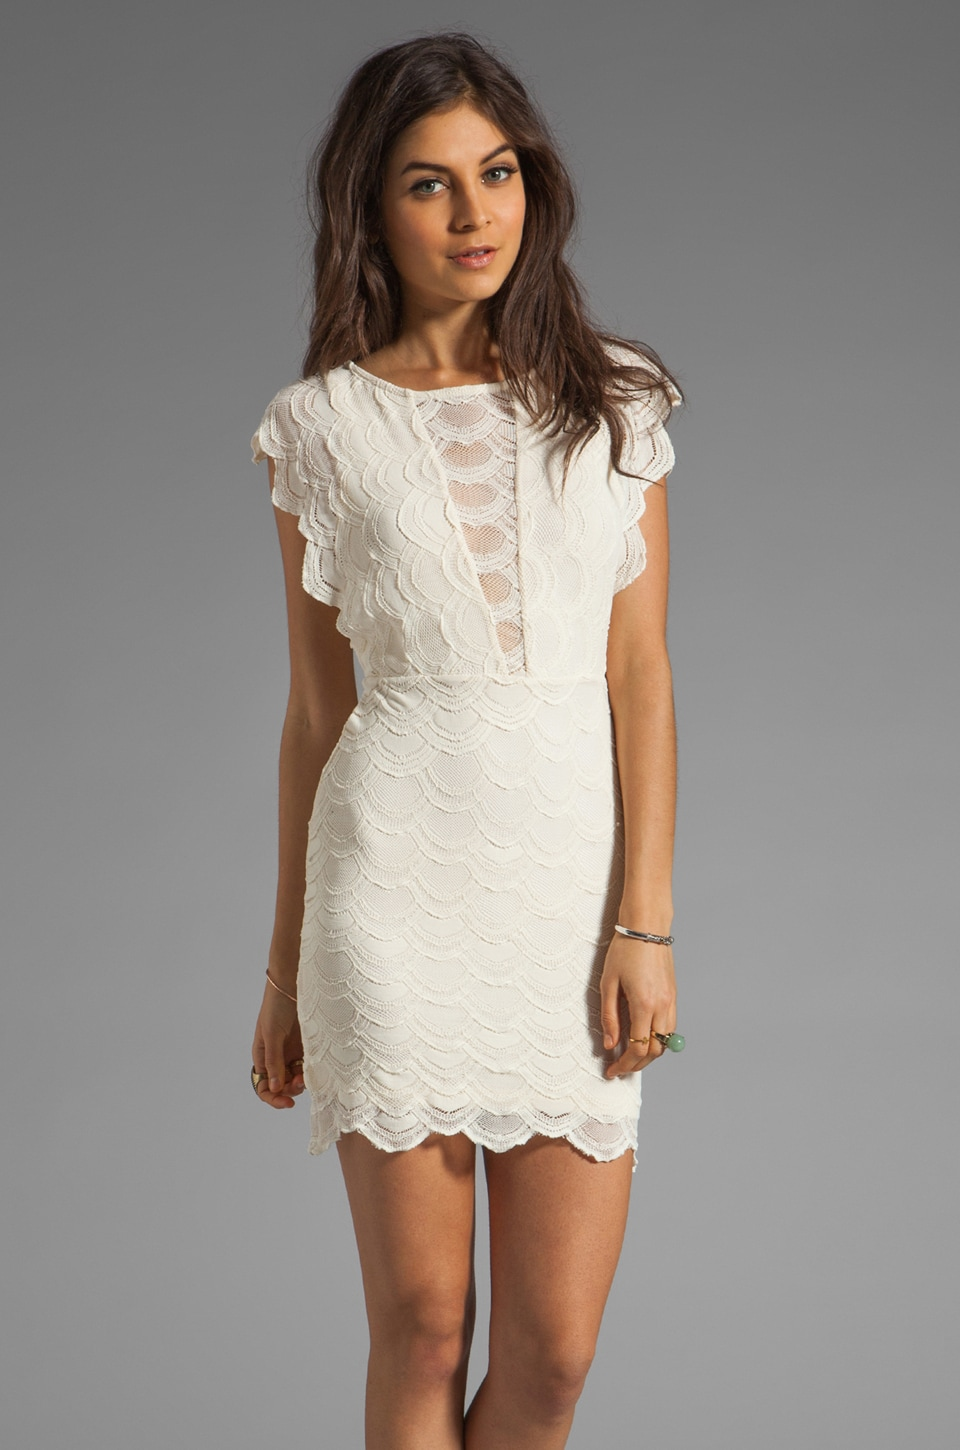 Nightcap Caletto Victorian Lace Mini Dress in Ivory